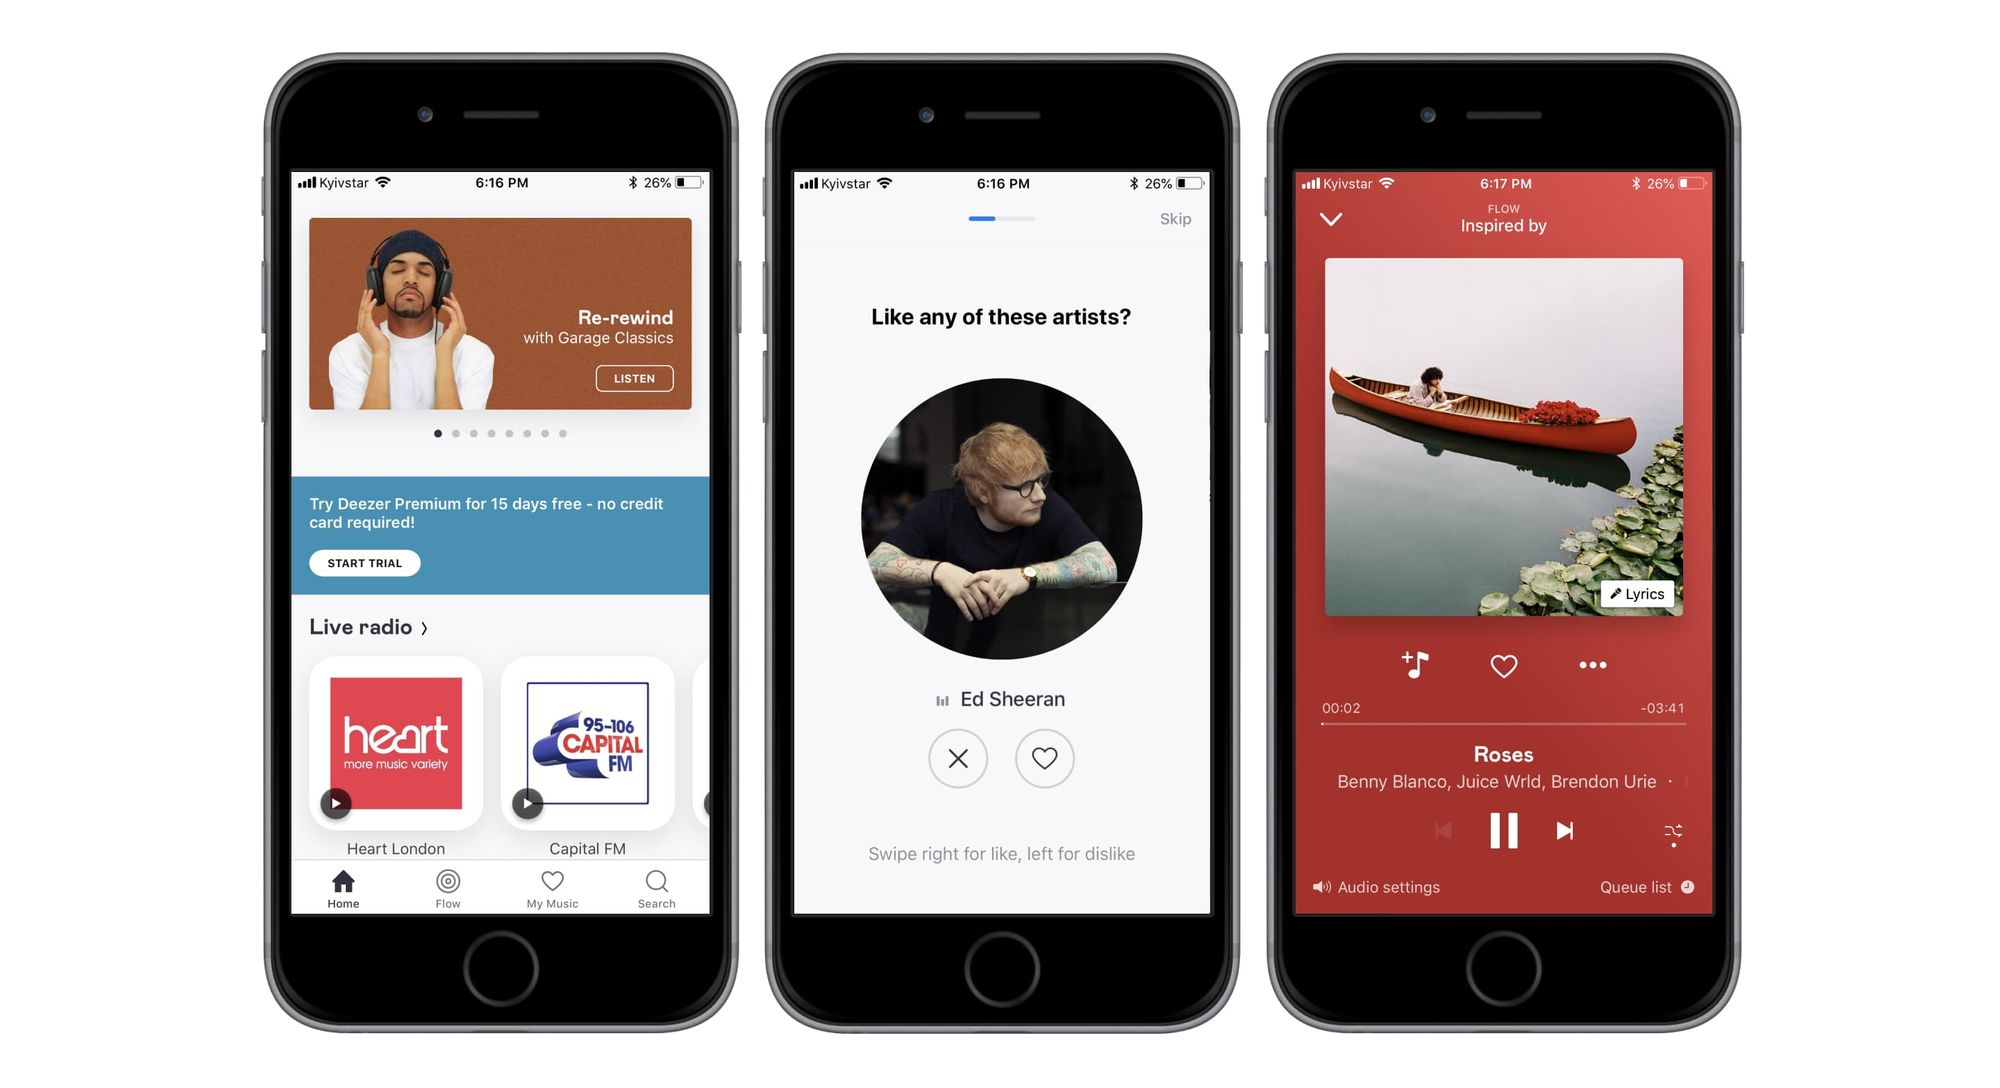 Check out the 5 Best Music Apps For You in 2019